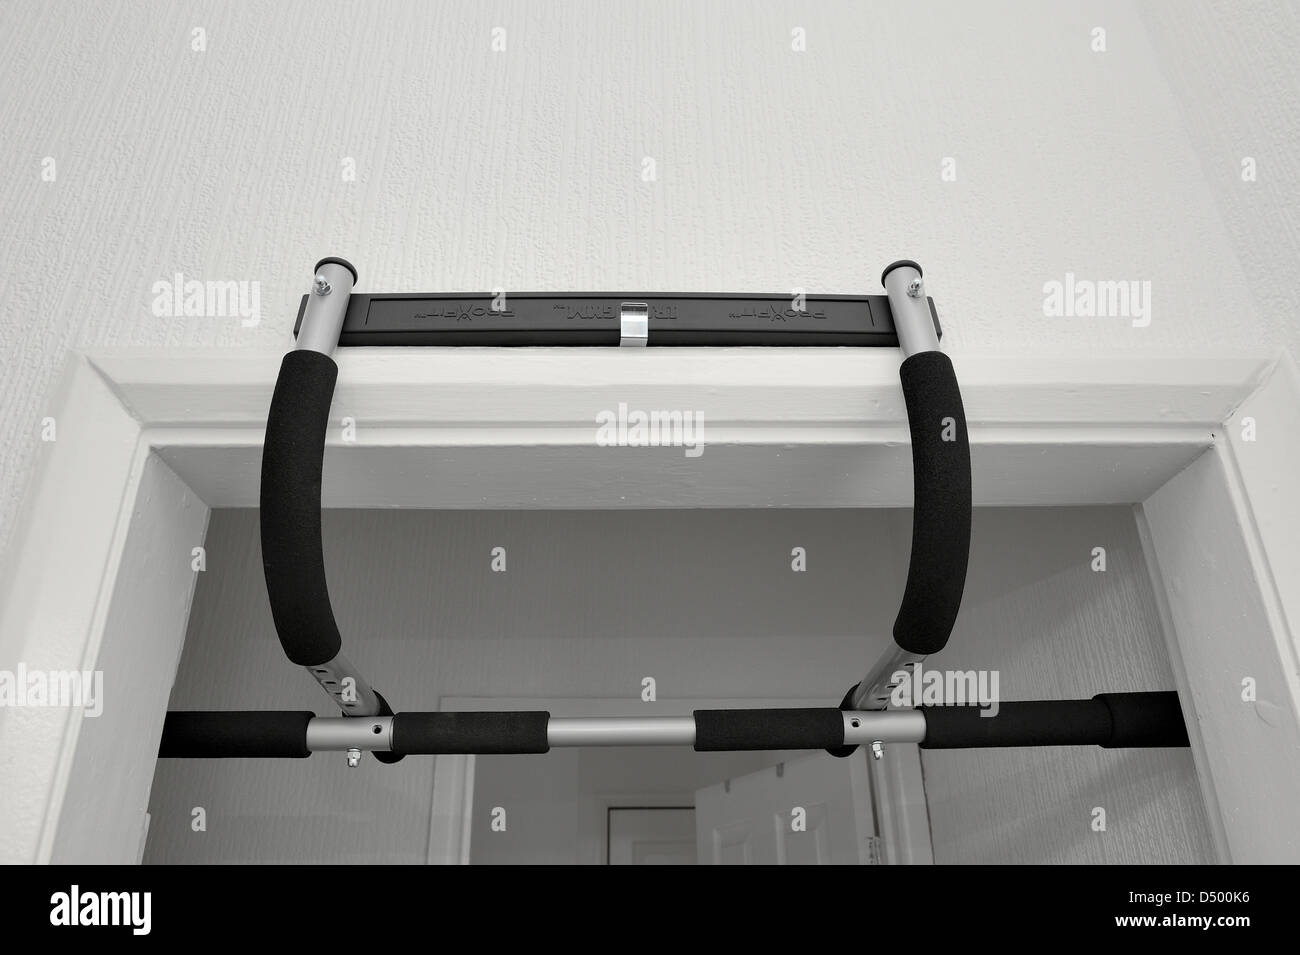 pro fit portable gym work out exercise bar mounted to the top of a door frame - Stock Image